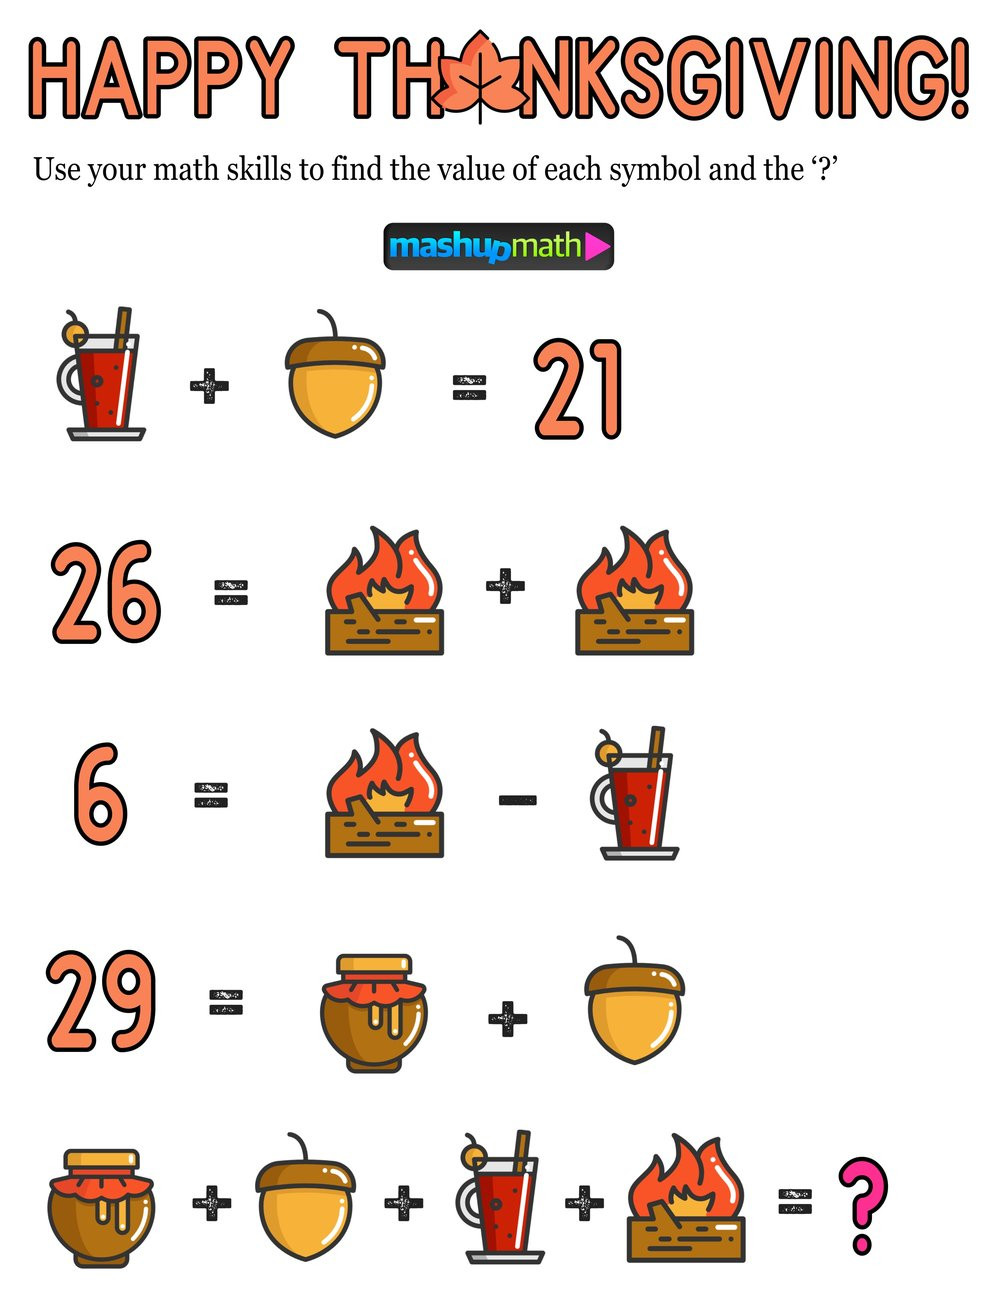 Thanksgiving Math Sheets 12 Thanksgiving Math Activities for Grades 1 8 — Mashup Math